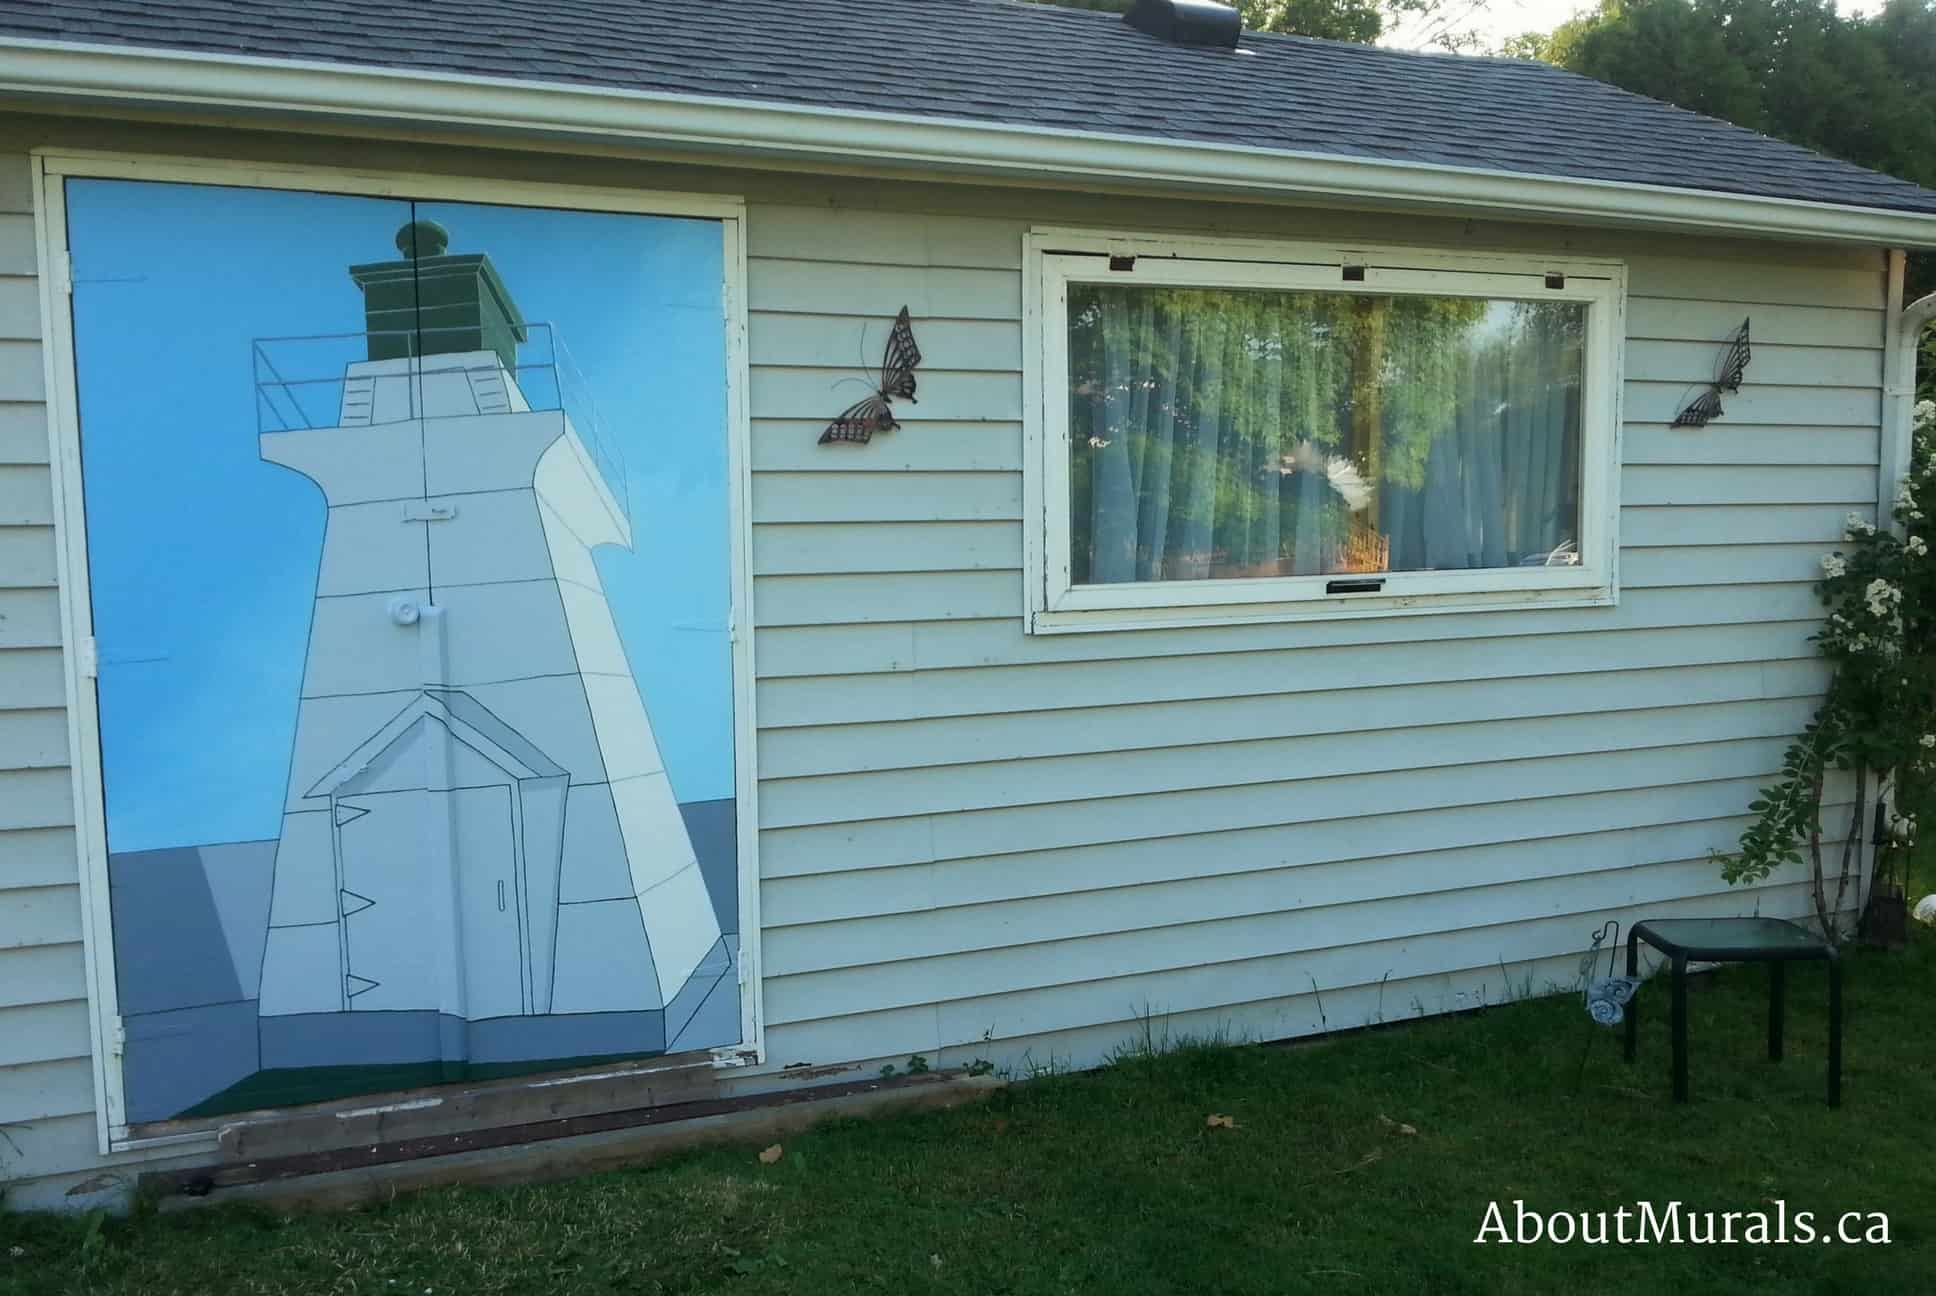 A lighthouse mural painted on the side of a garden shed in Port Dover